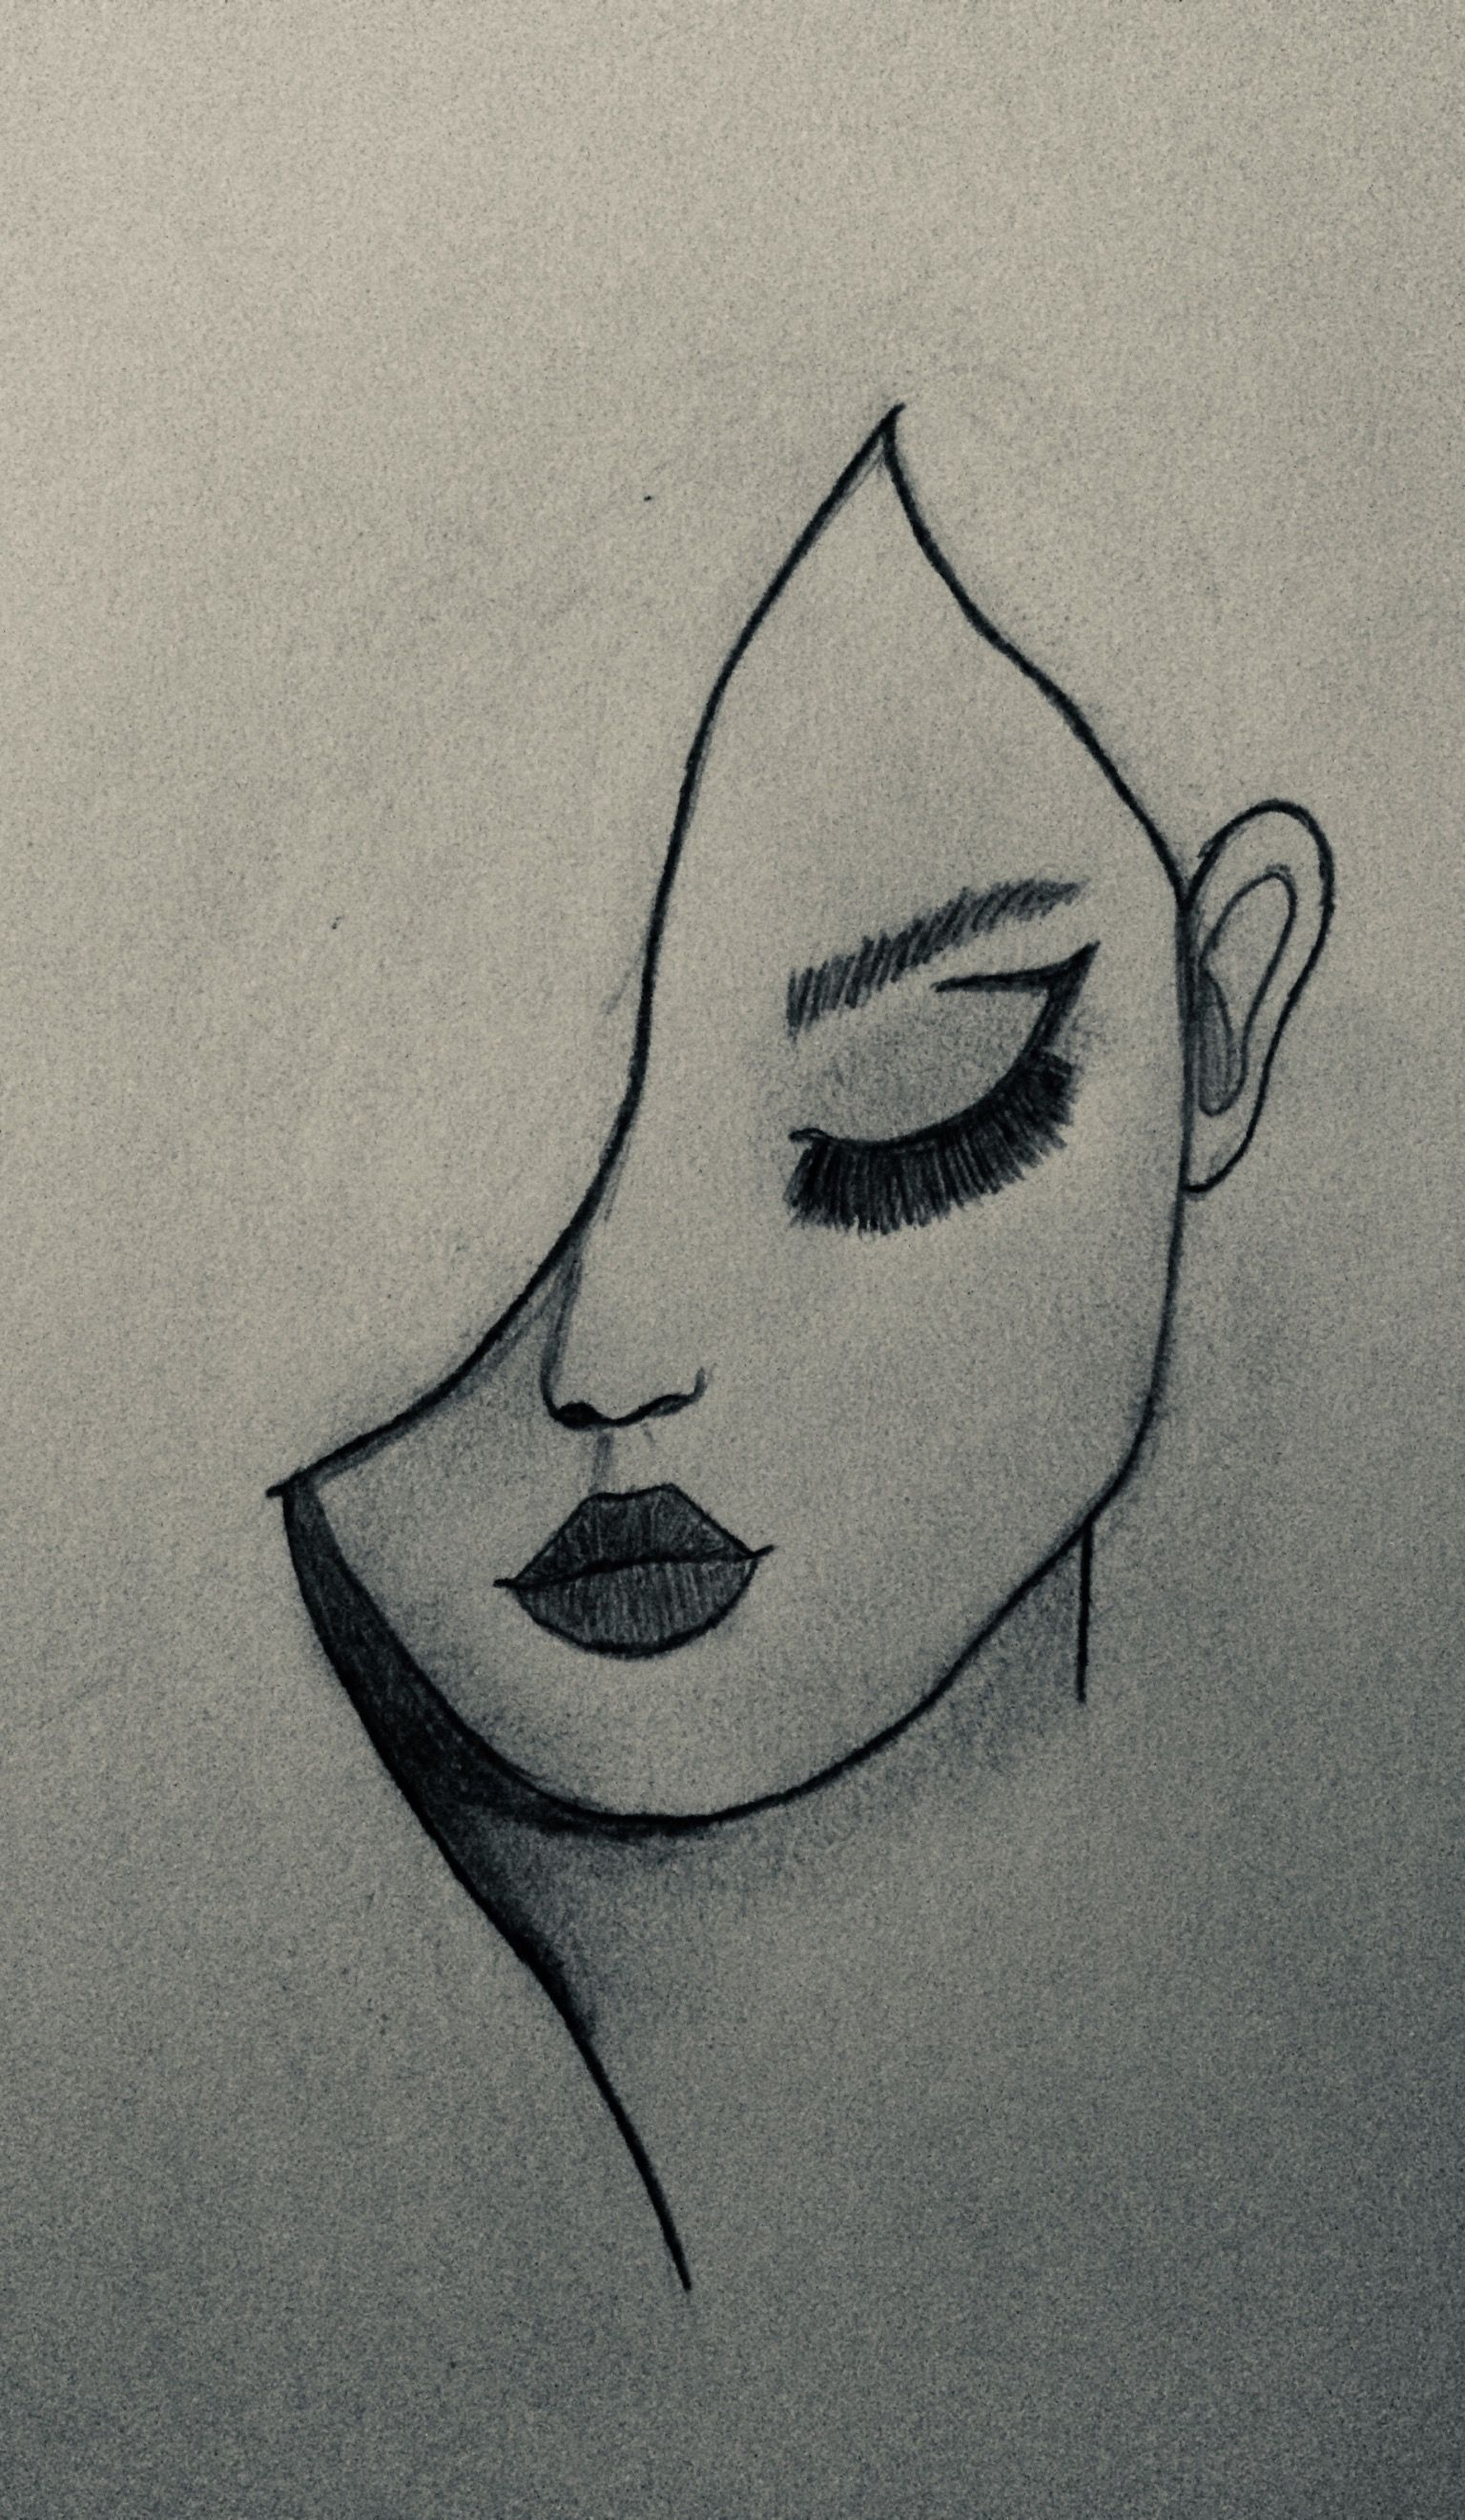 Pin By Crystal Pike On My Art Art Drawings Sketches Simple Art Drawings Simple Art Drawings Sketches